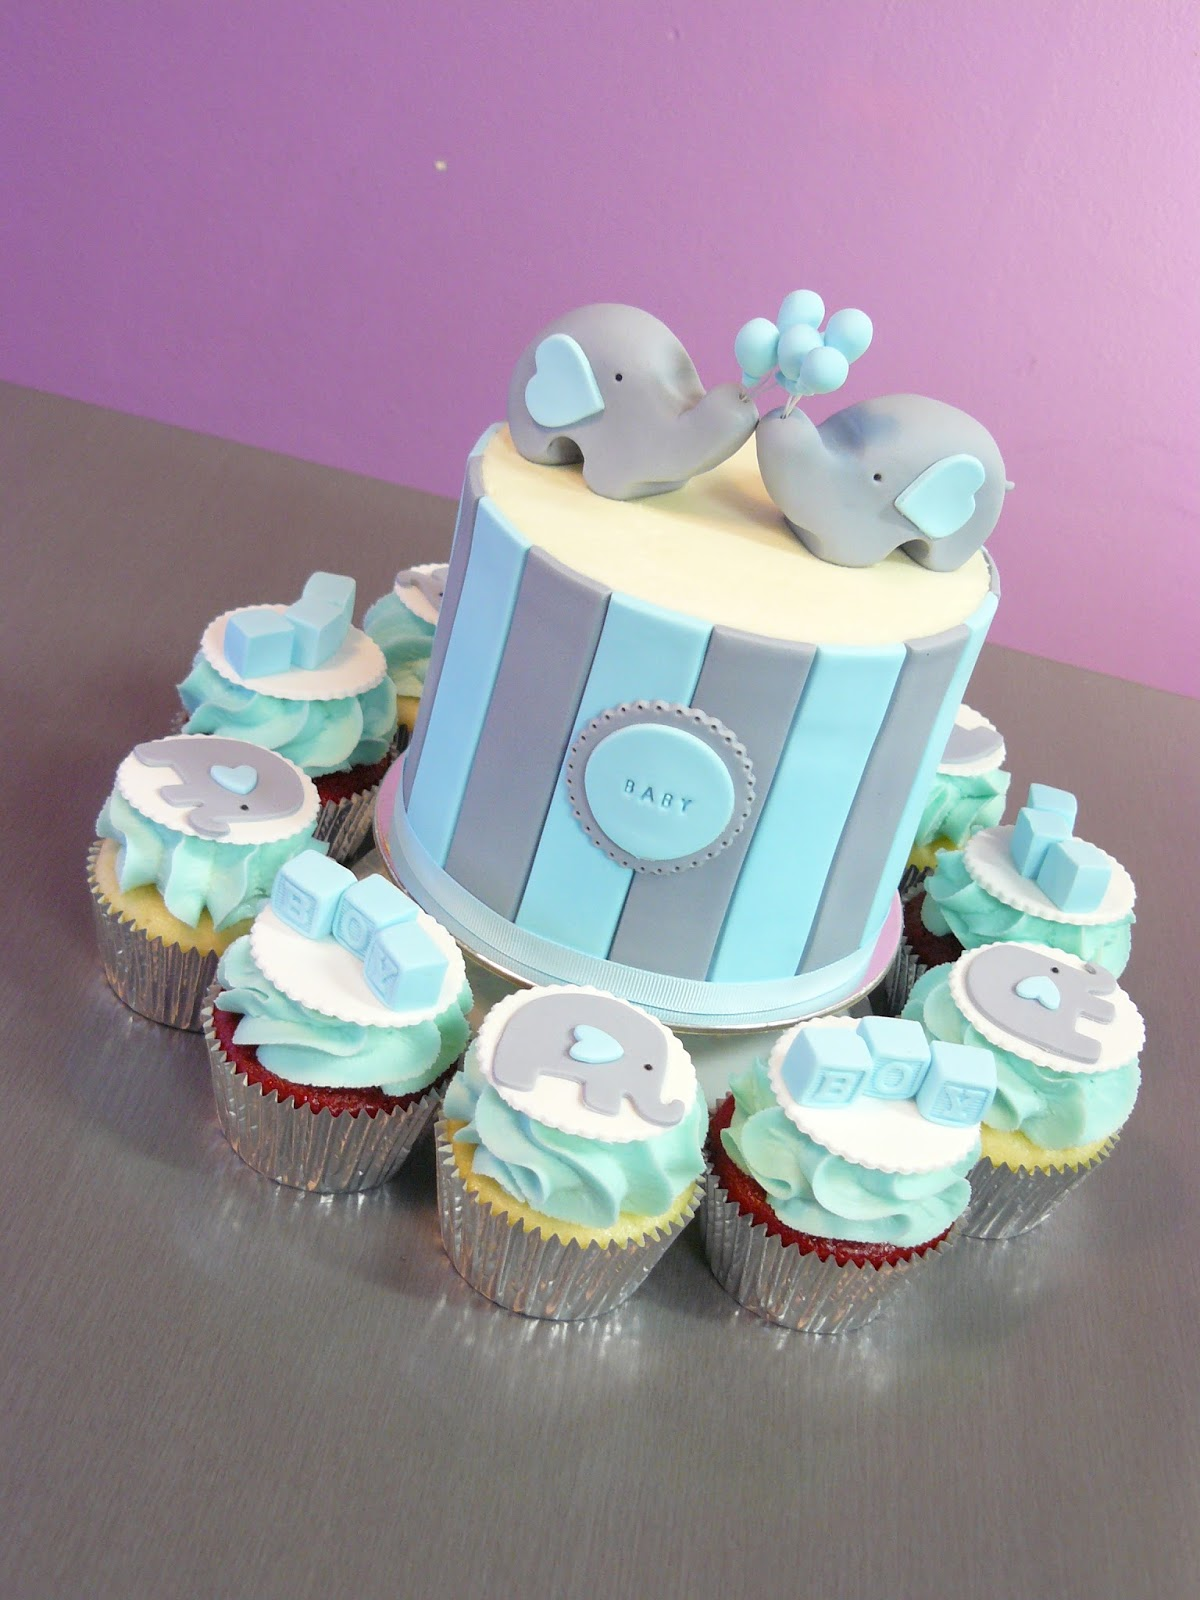 The Cup Cake Taste Brisbane Cupcakes Elephant Baby Shower Combo